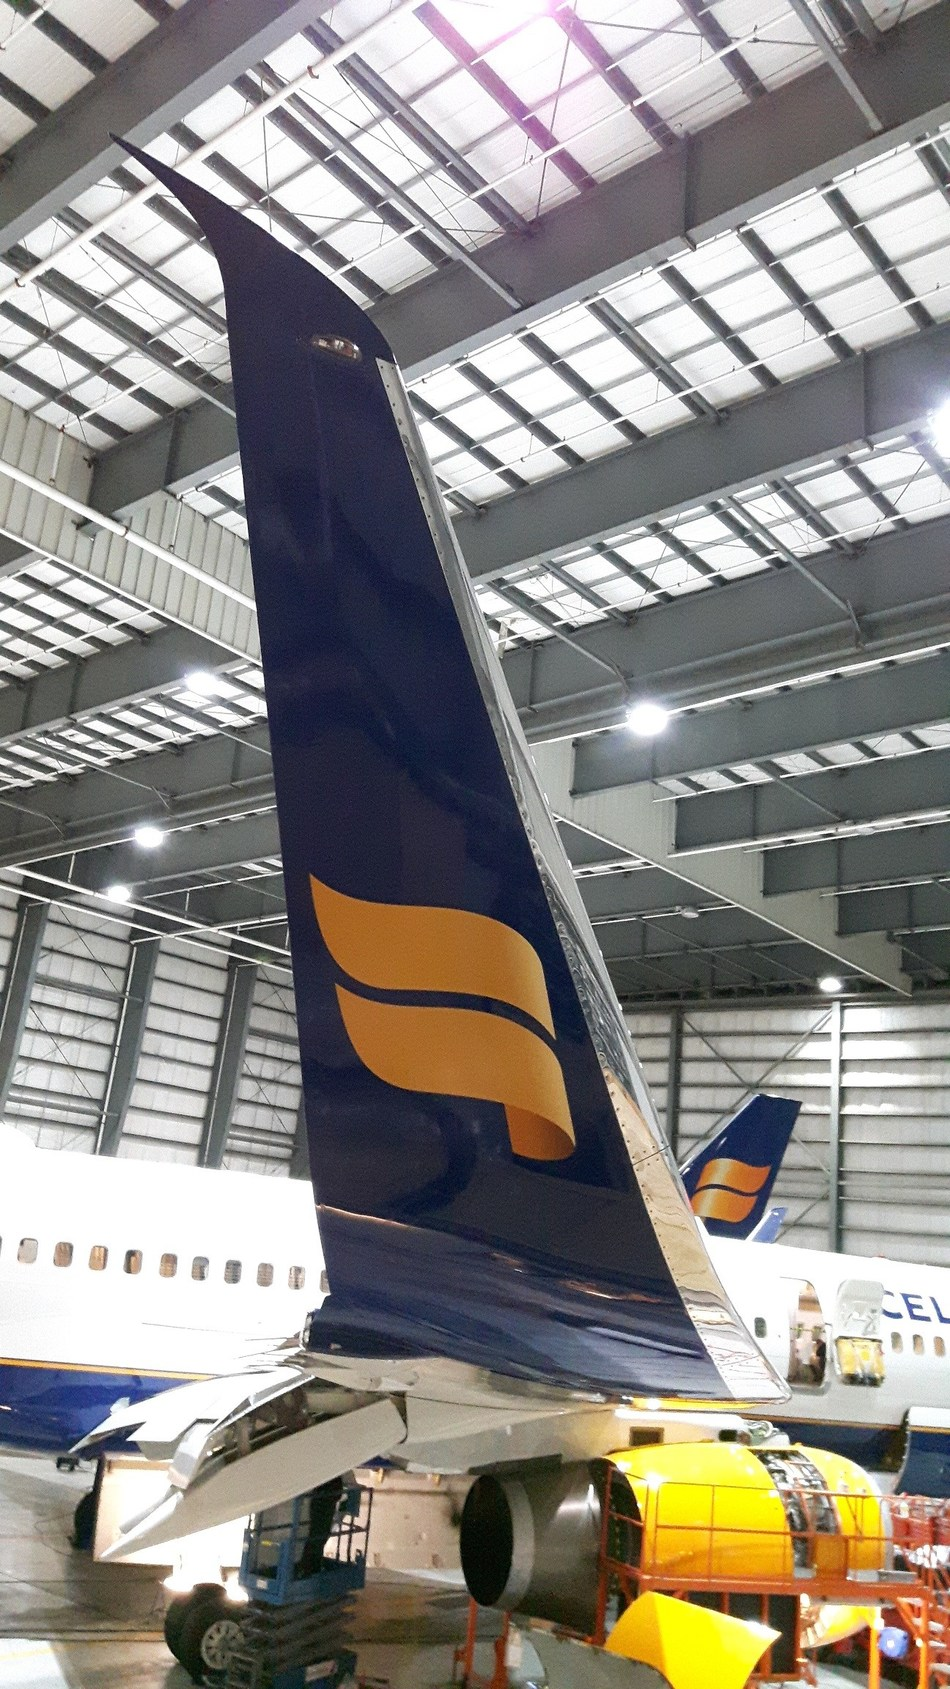 Icelandair 757-200 Scimitar Blended Winglet